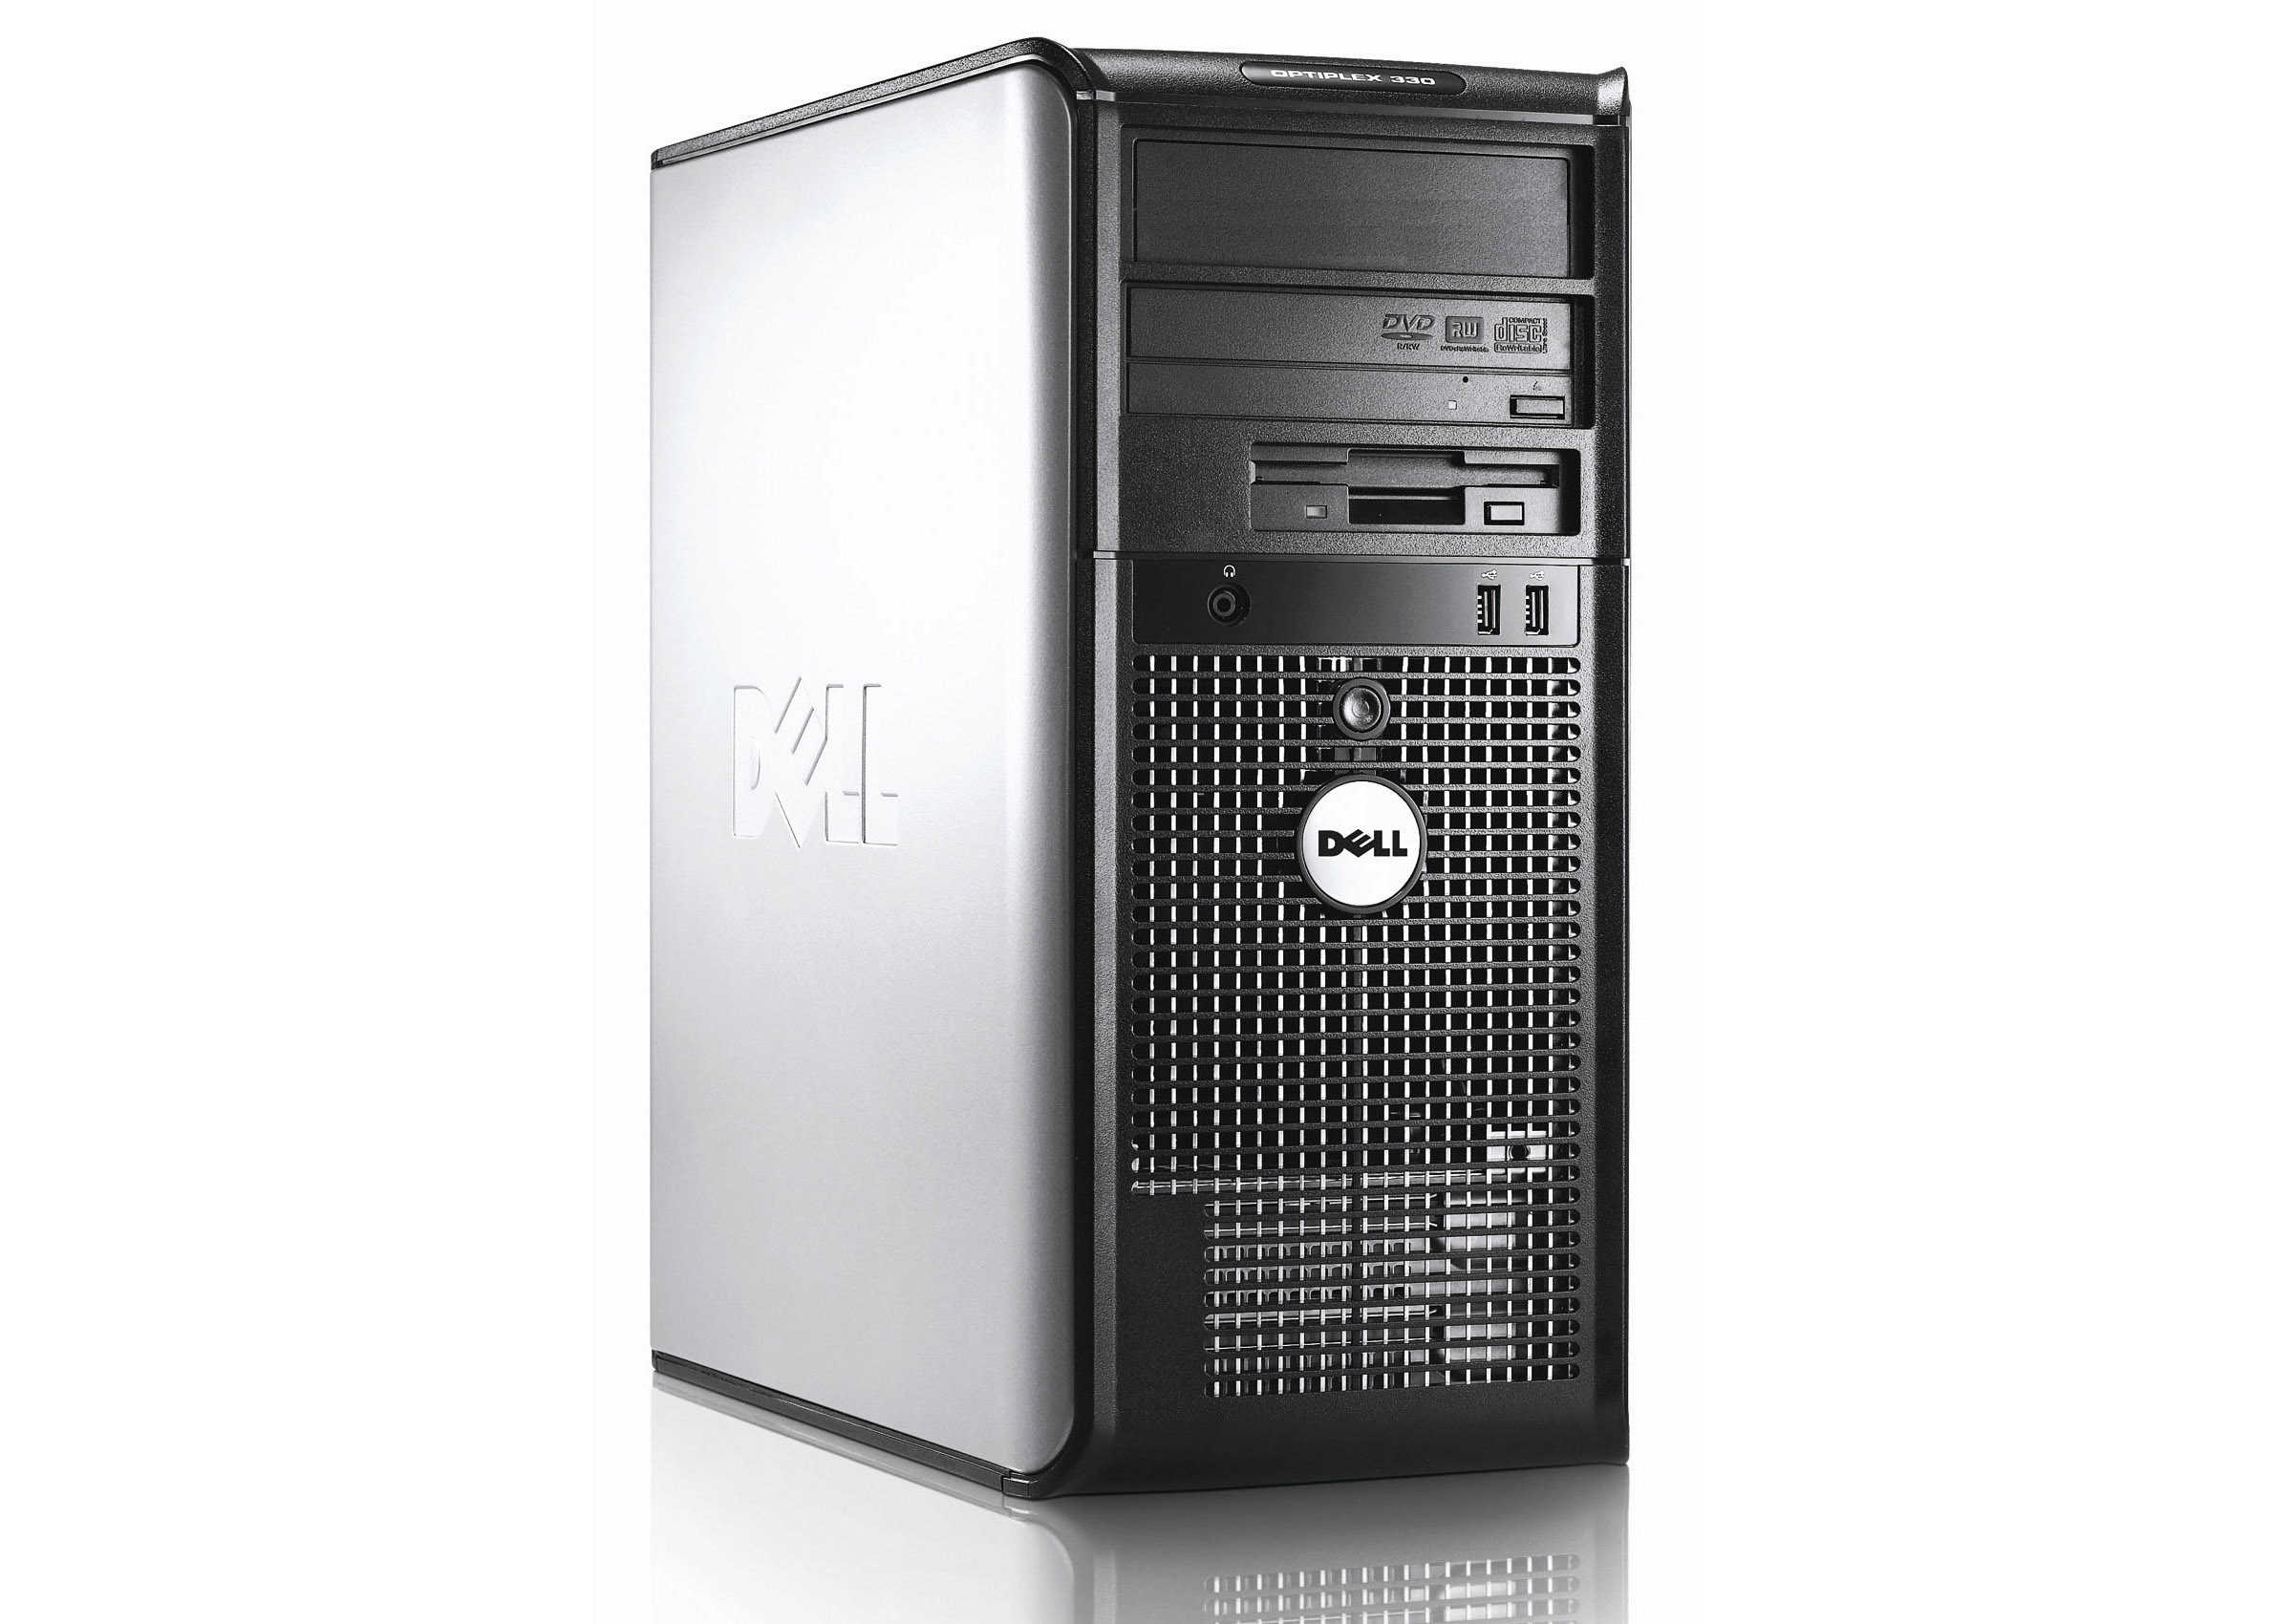 REFURBISHED: Optiplex GX745 Tower - 400GB HDD, 4GB Ram, DVD-Rom, Windows XP Professional